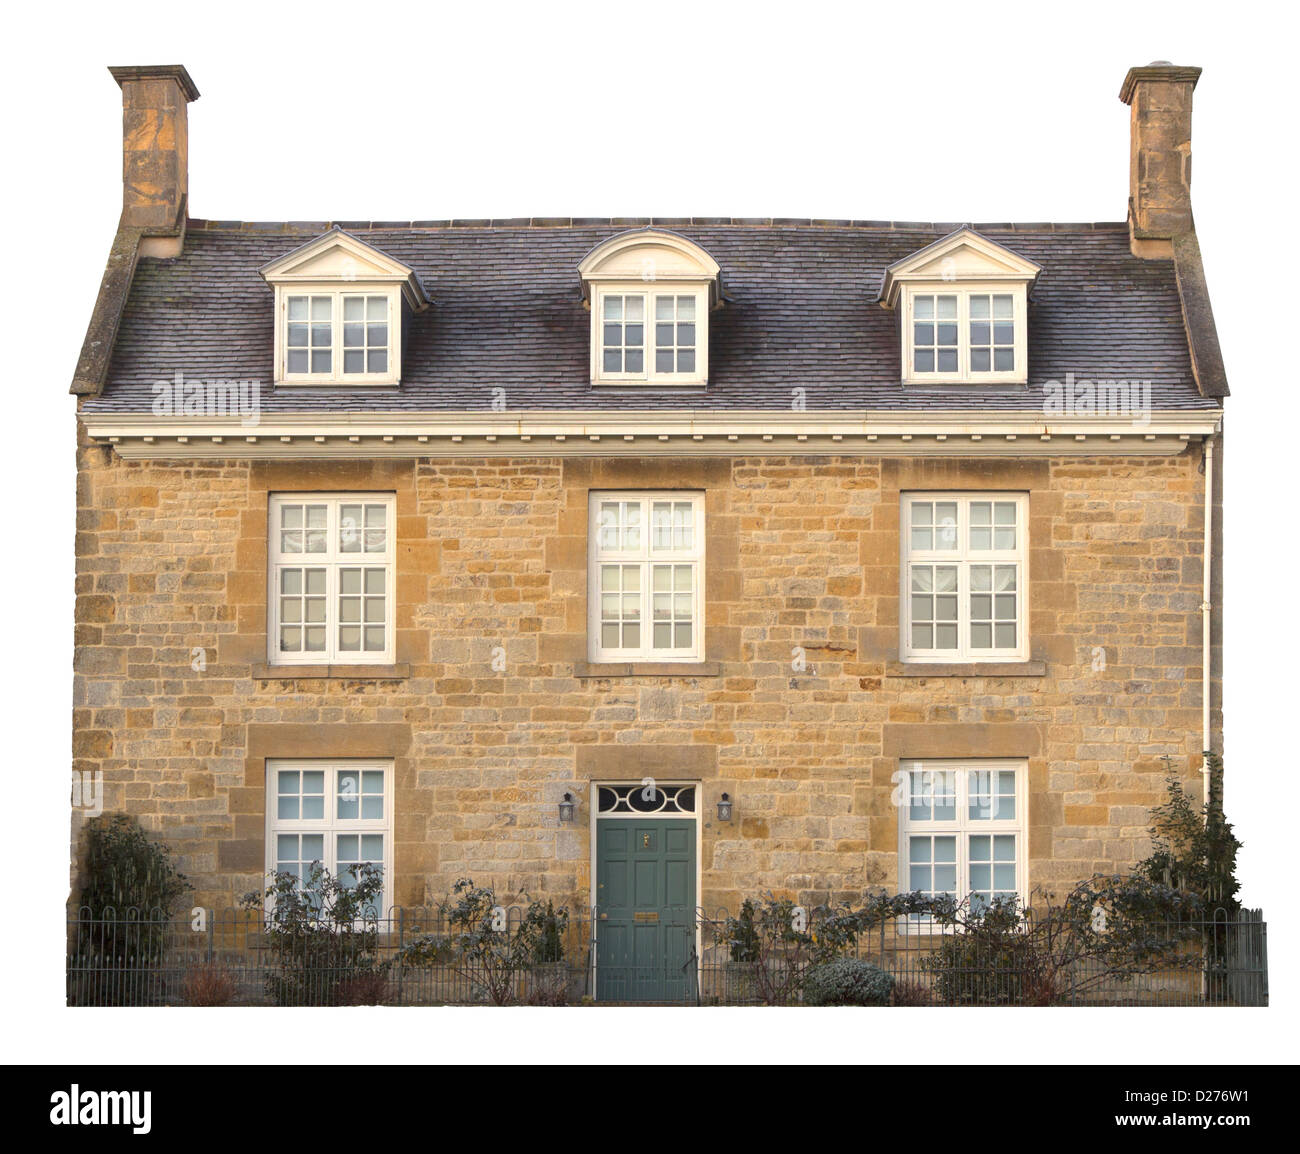 Cotswold house cut-out, England - Stock Image